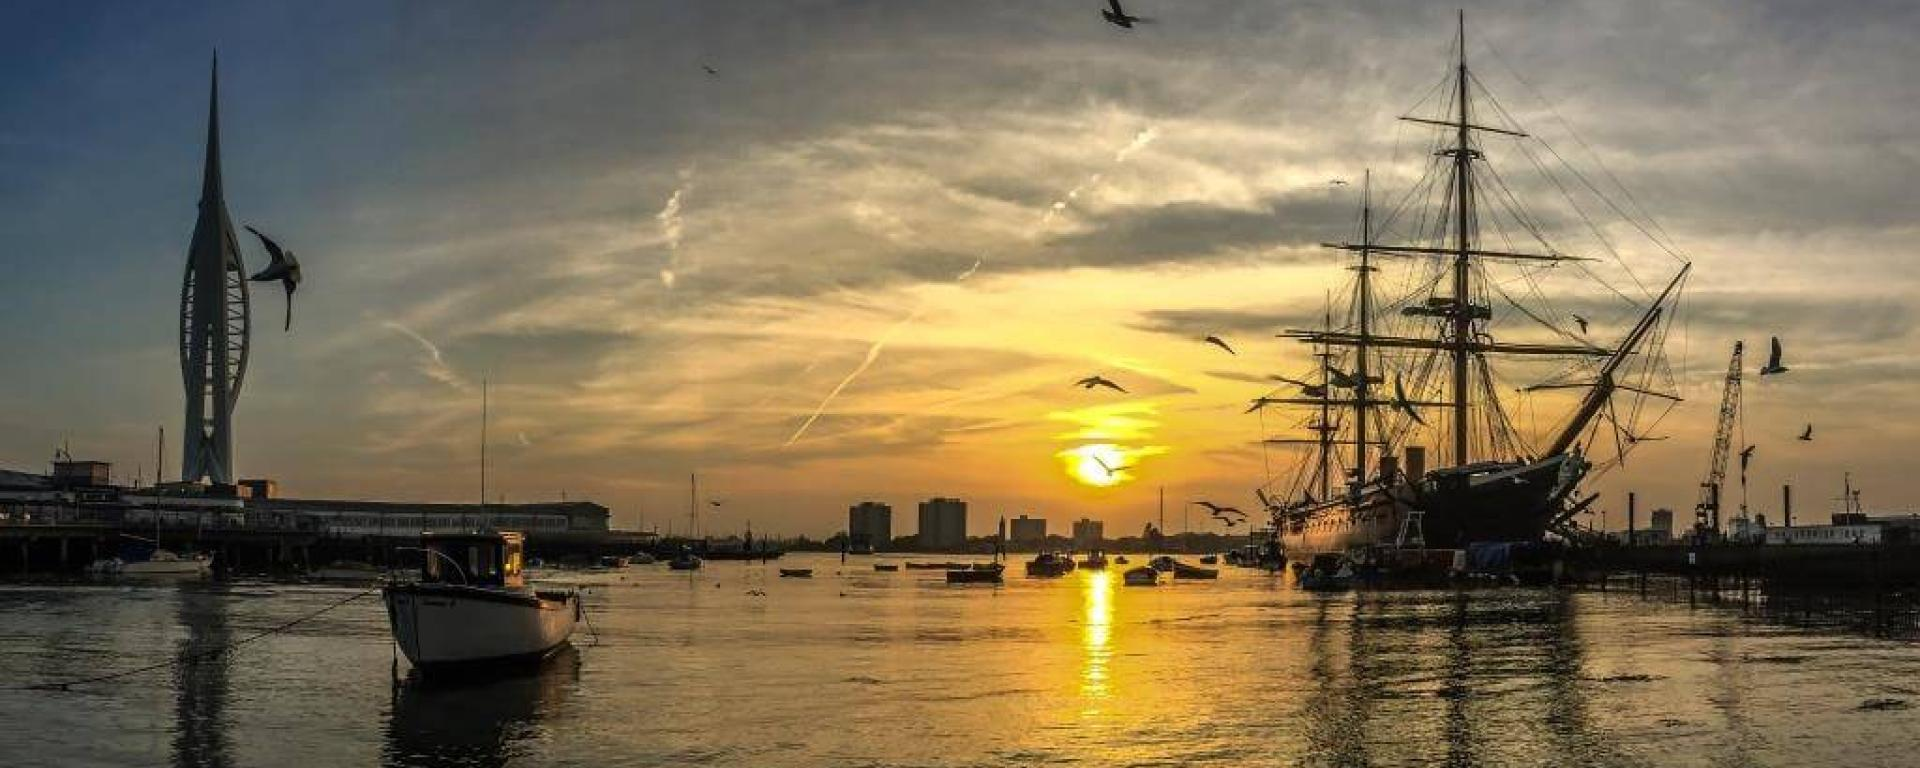 Sunset HMS Warrior